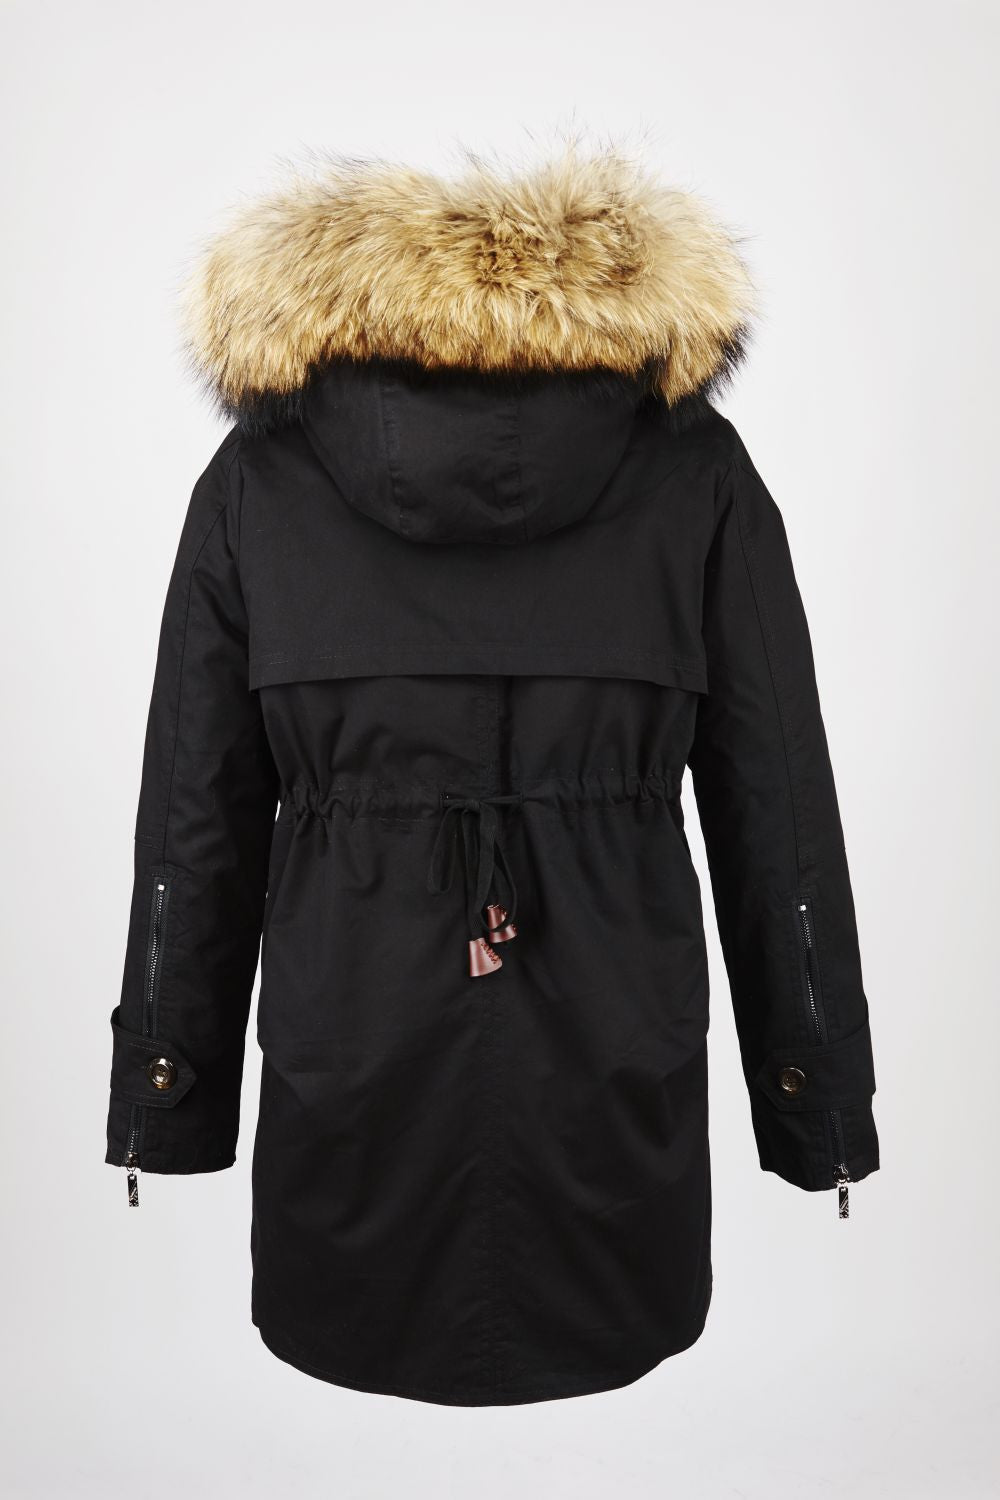 Classic Army Parka Black